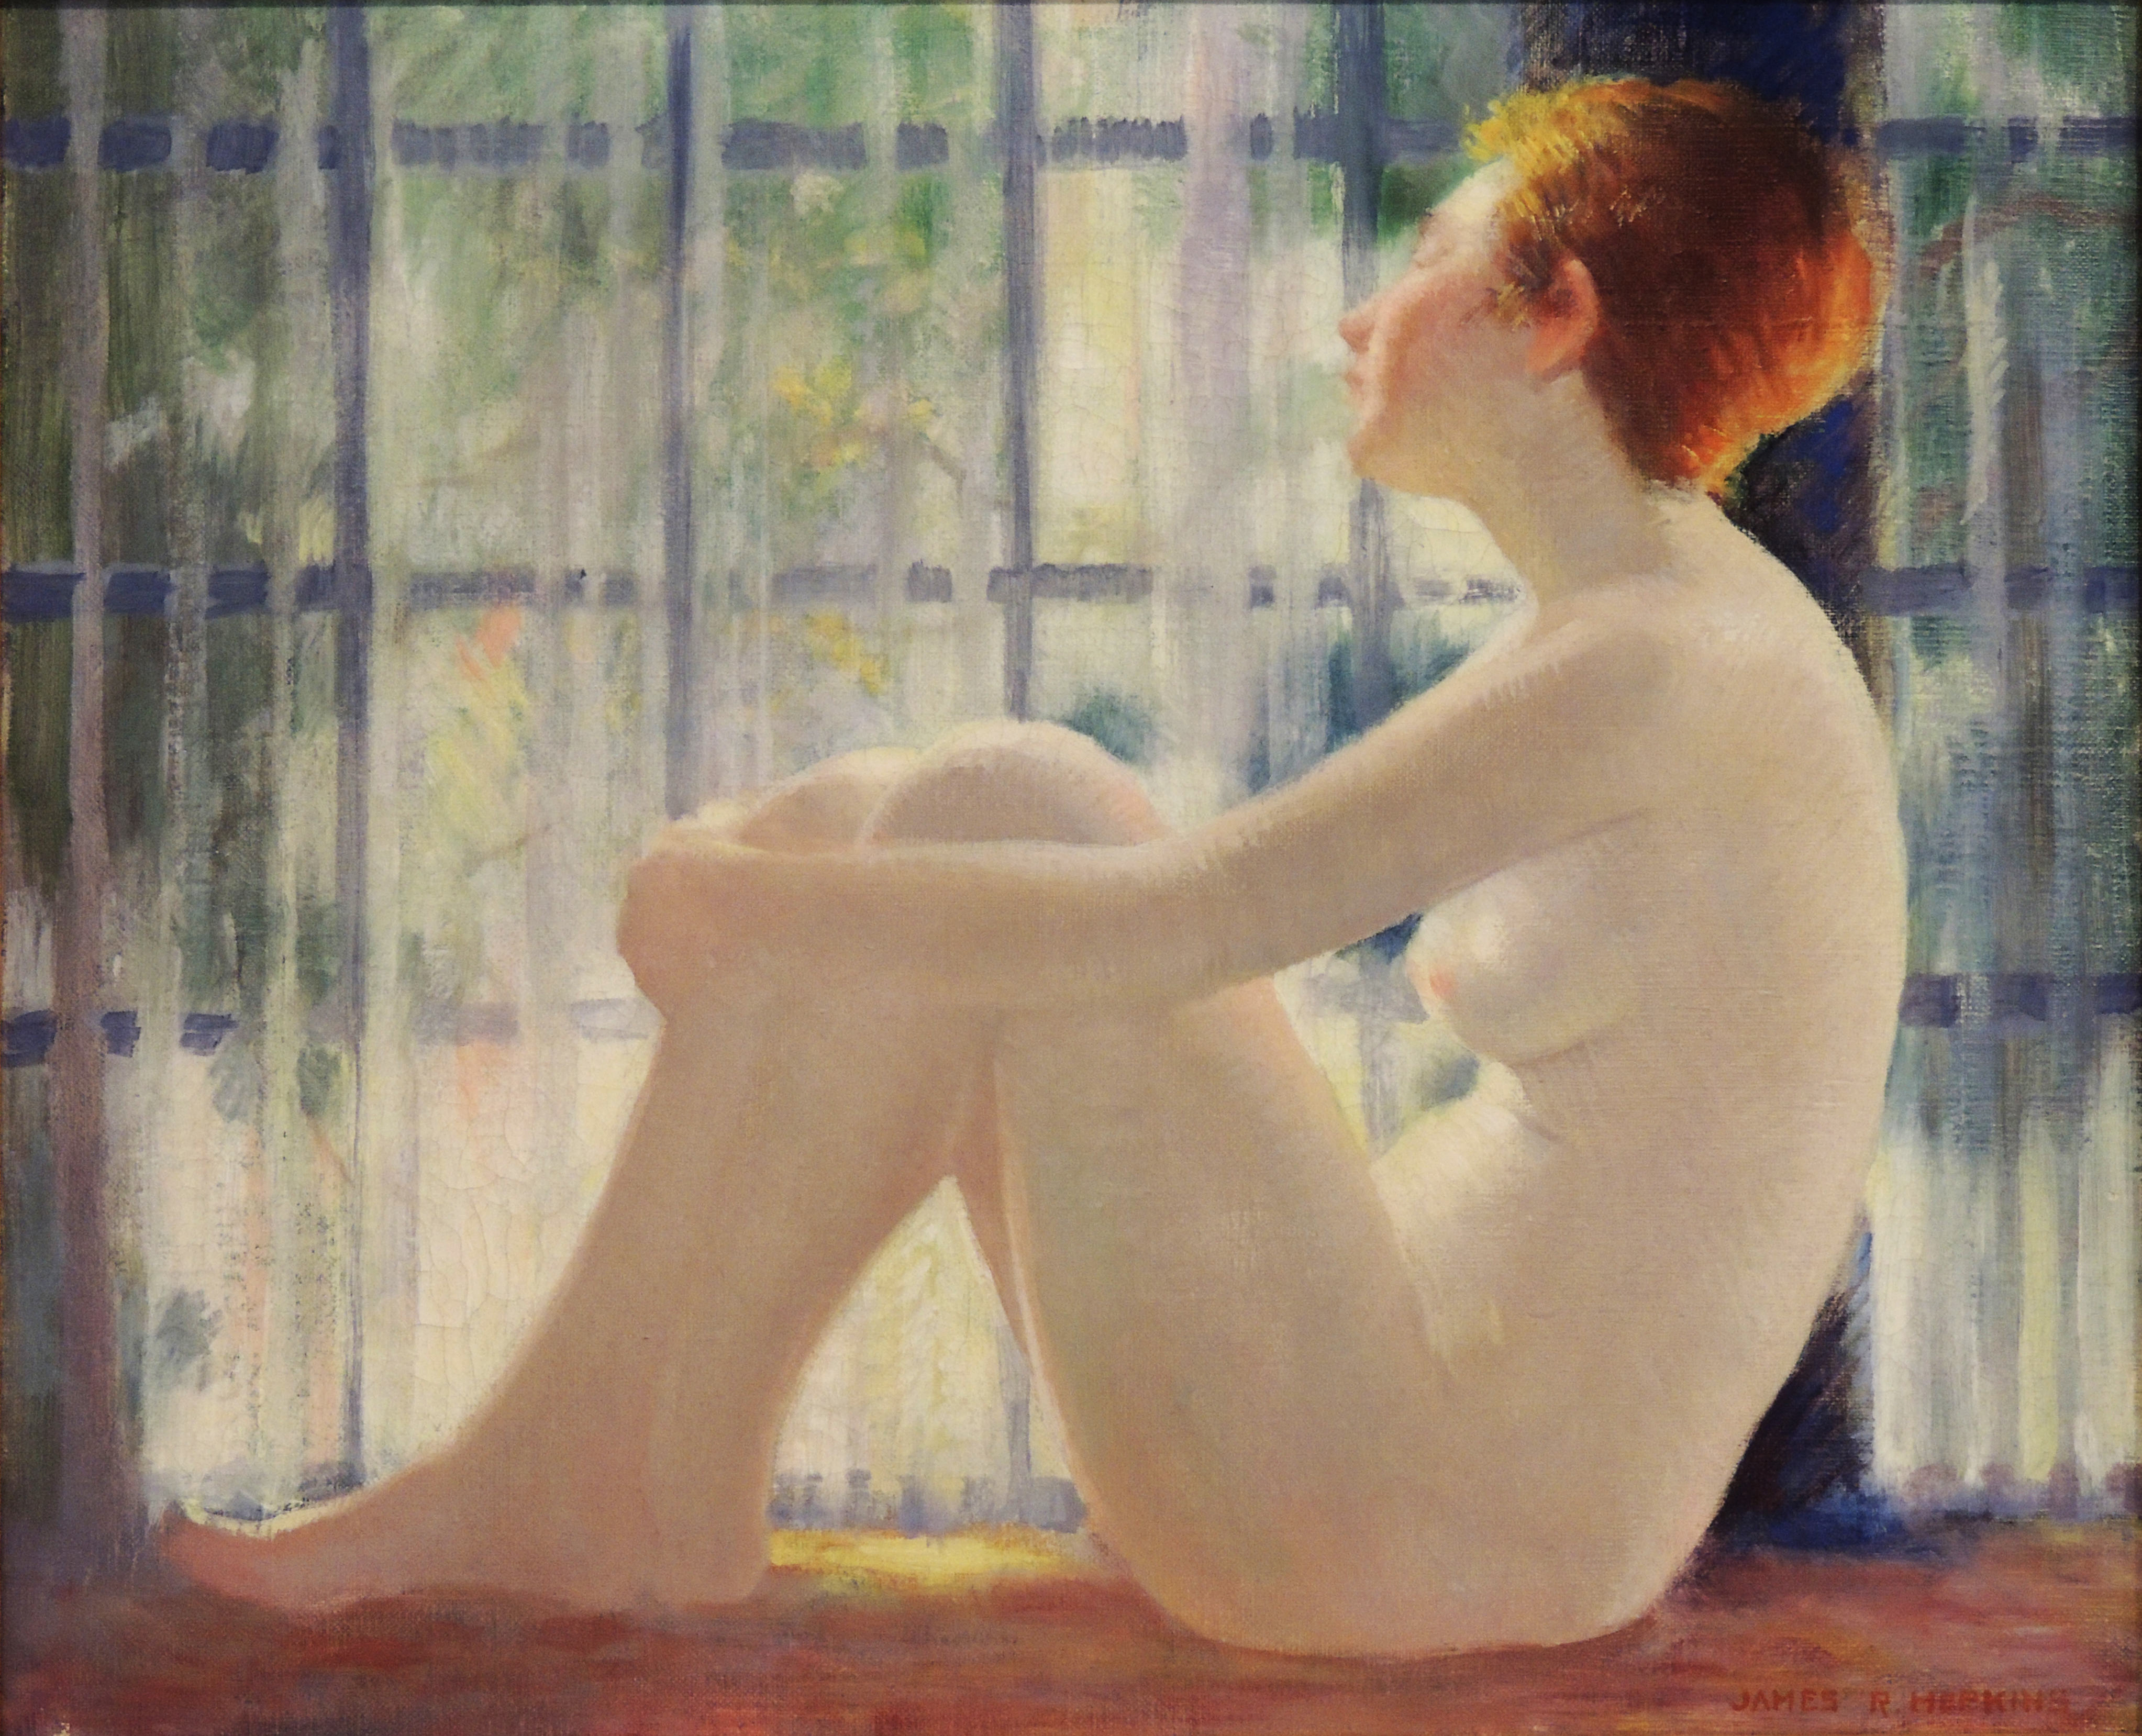 James R. Hopkins | SEATED NUDE WITH RED HAIR | oil on canvas | 15 x 18"